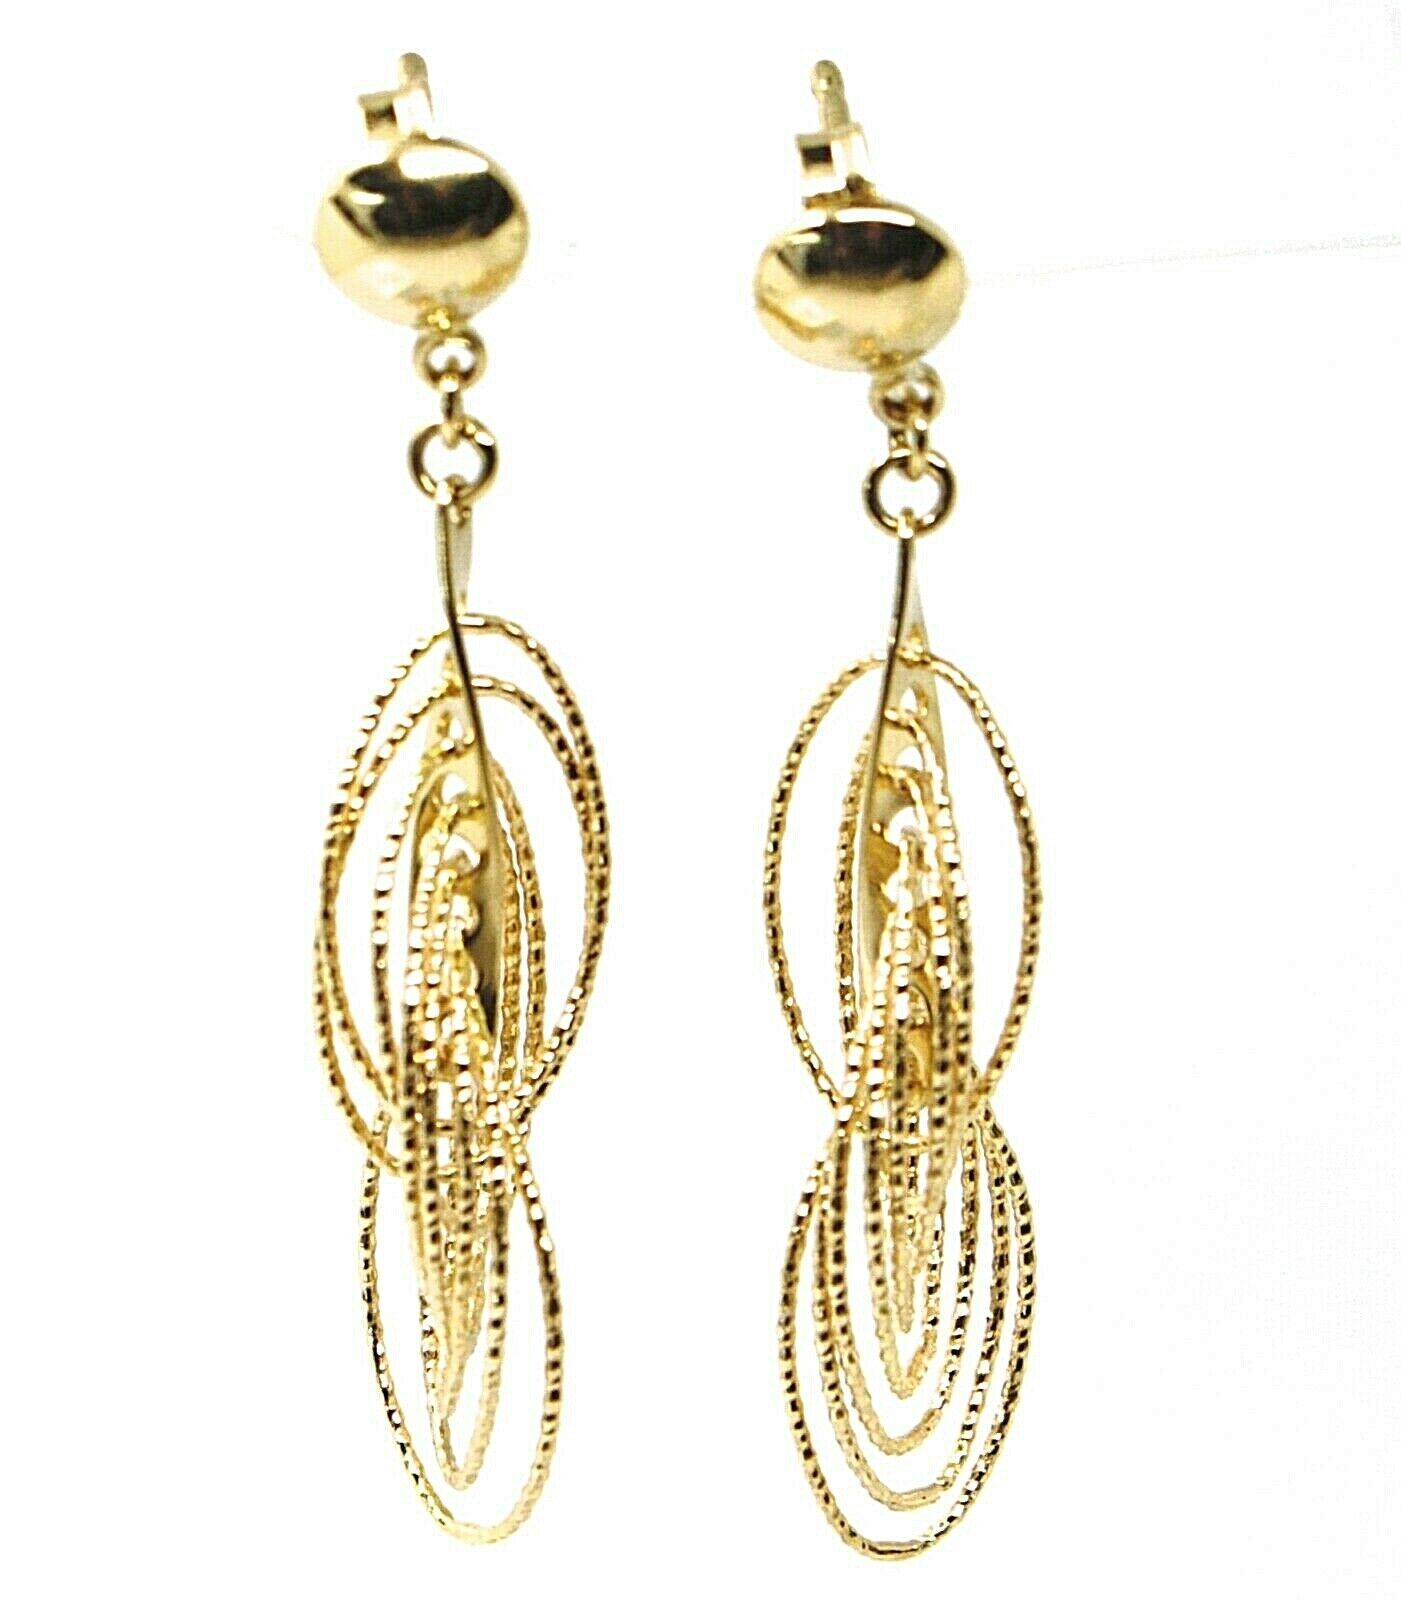 18K YELLOW GOLD PENDANT EARRINGS, MULTIPLE WORKED OVALS, SPIRAL 4cm, 1,6 INCHES